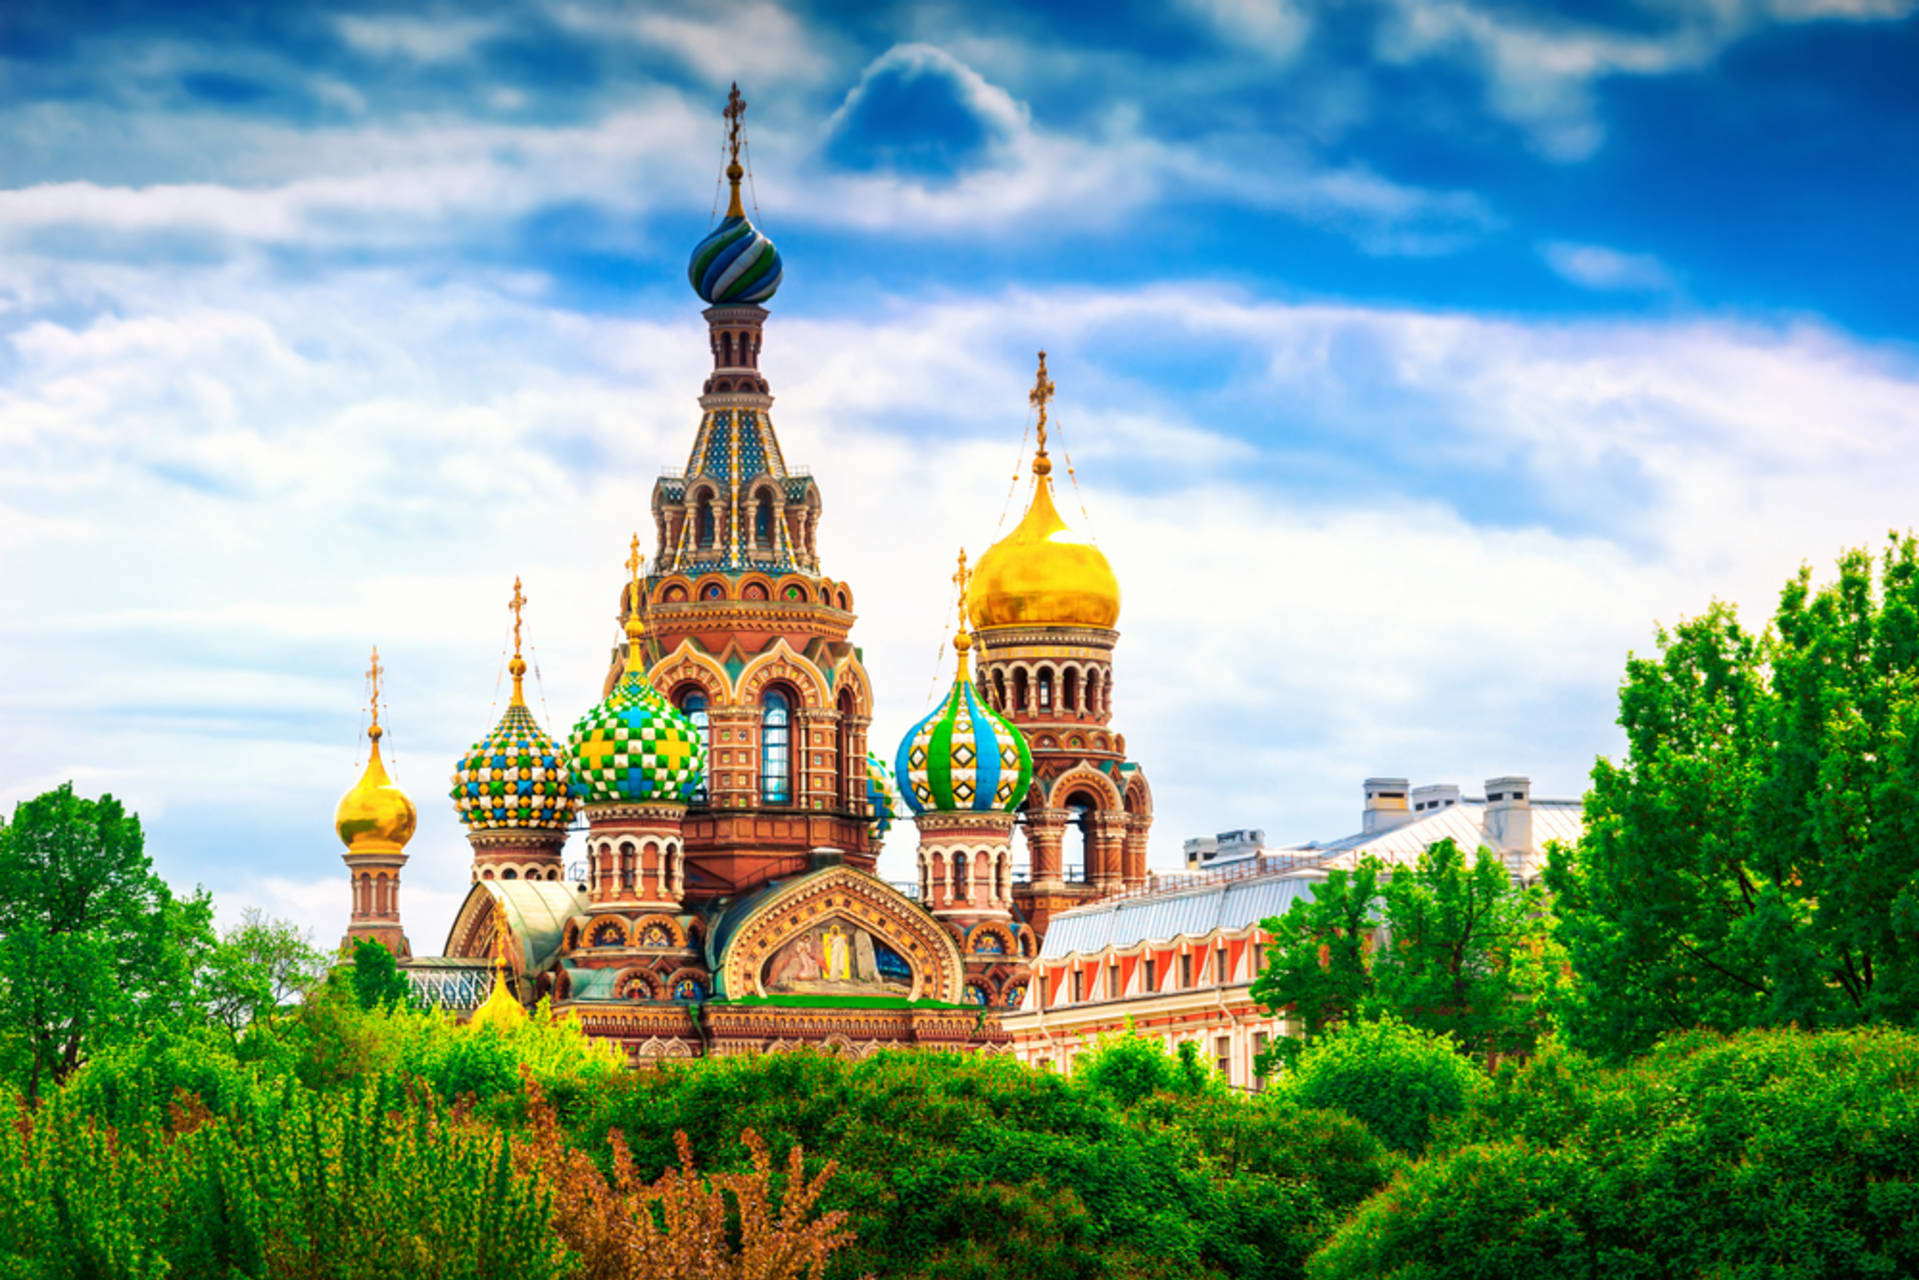 Saint Petersburg - The Spilled Blood Cathedral